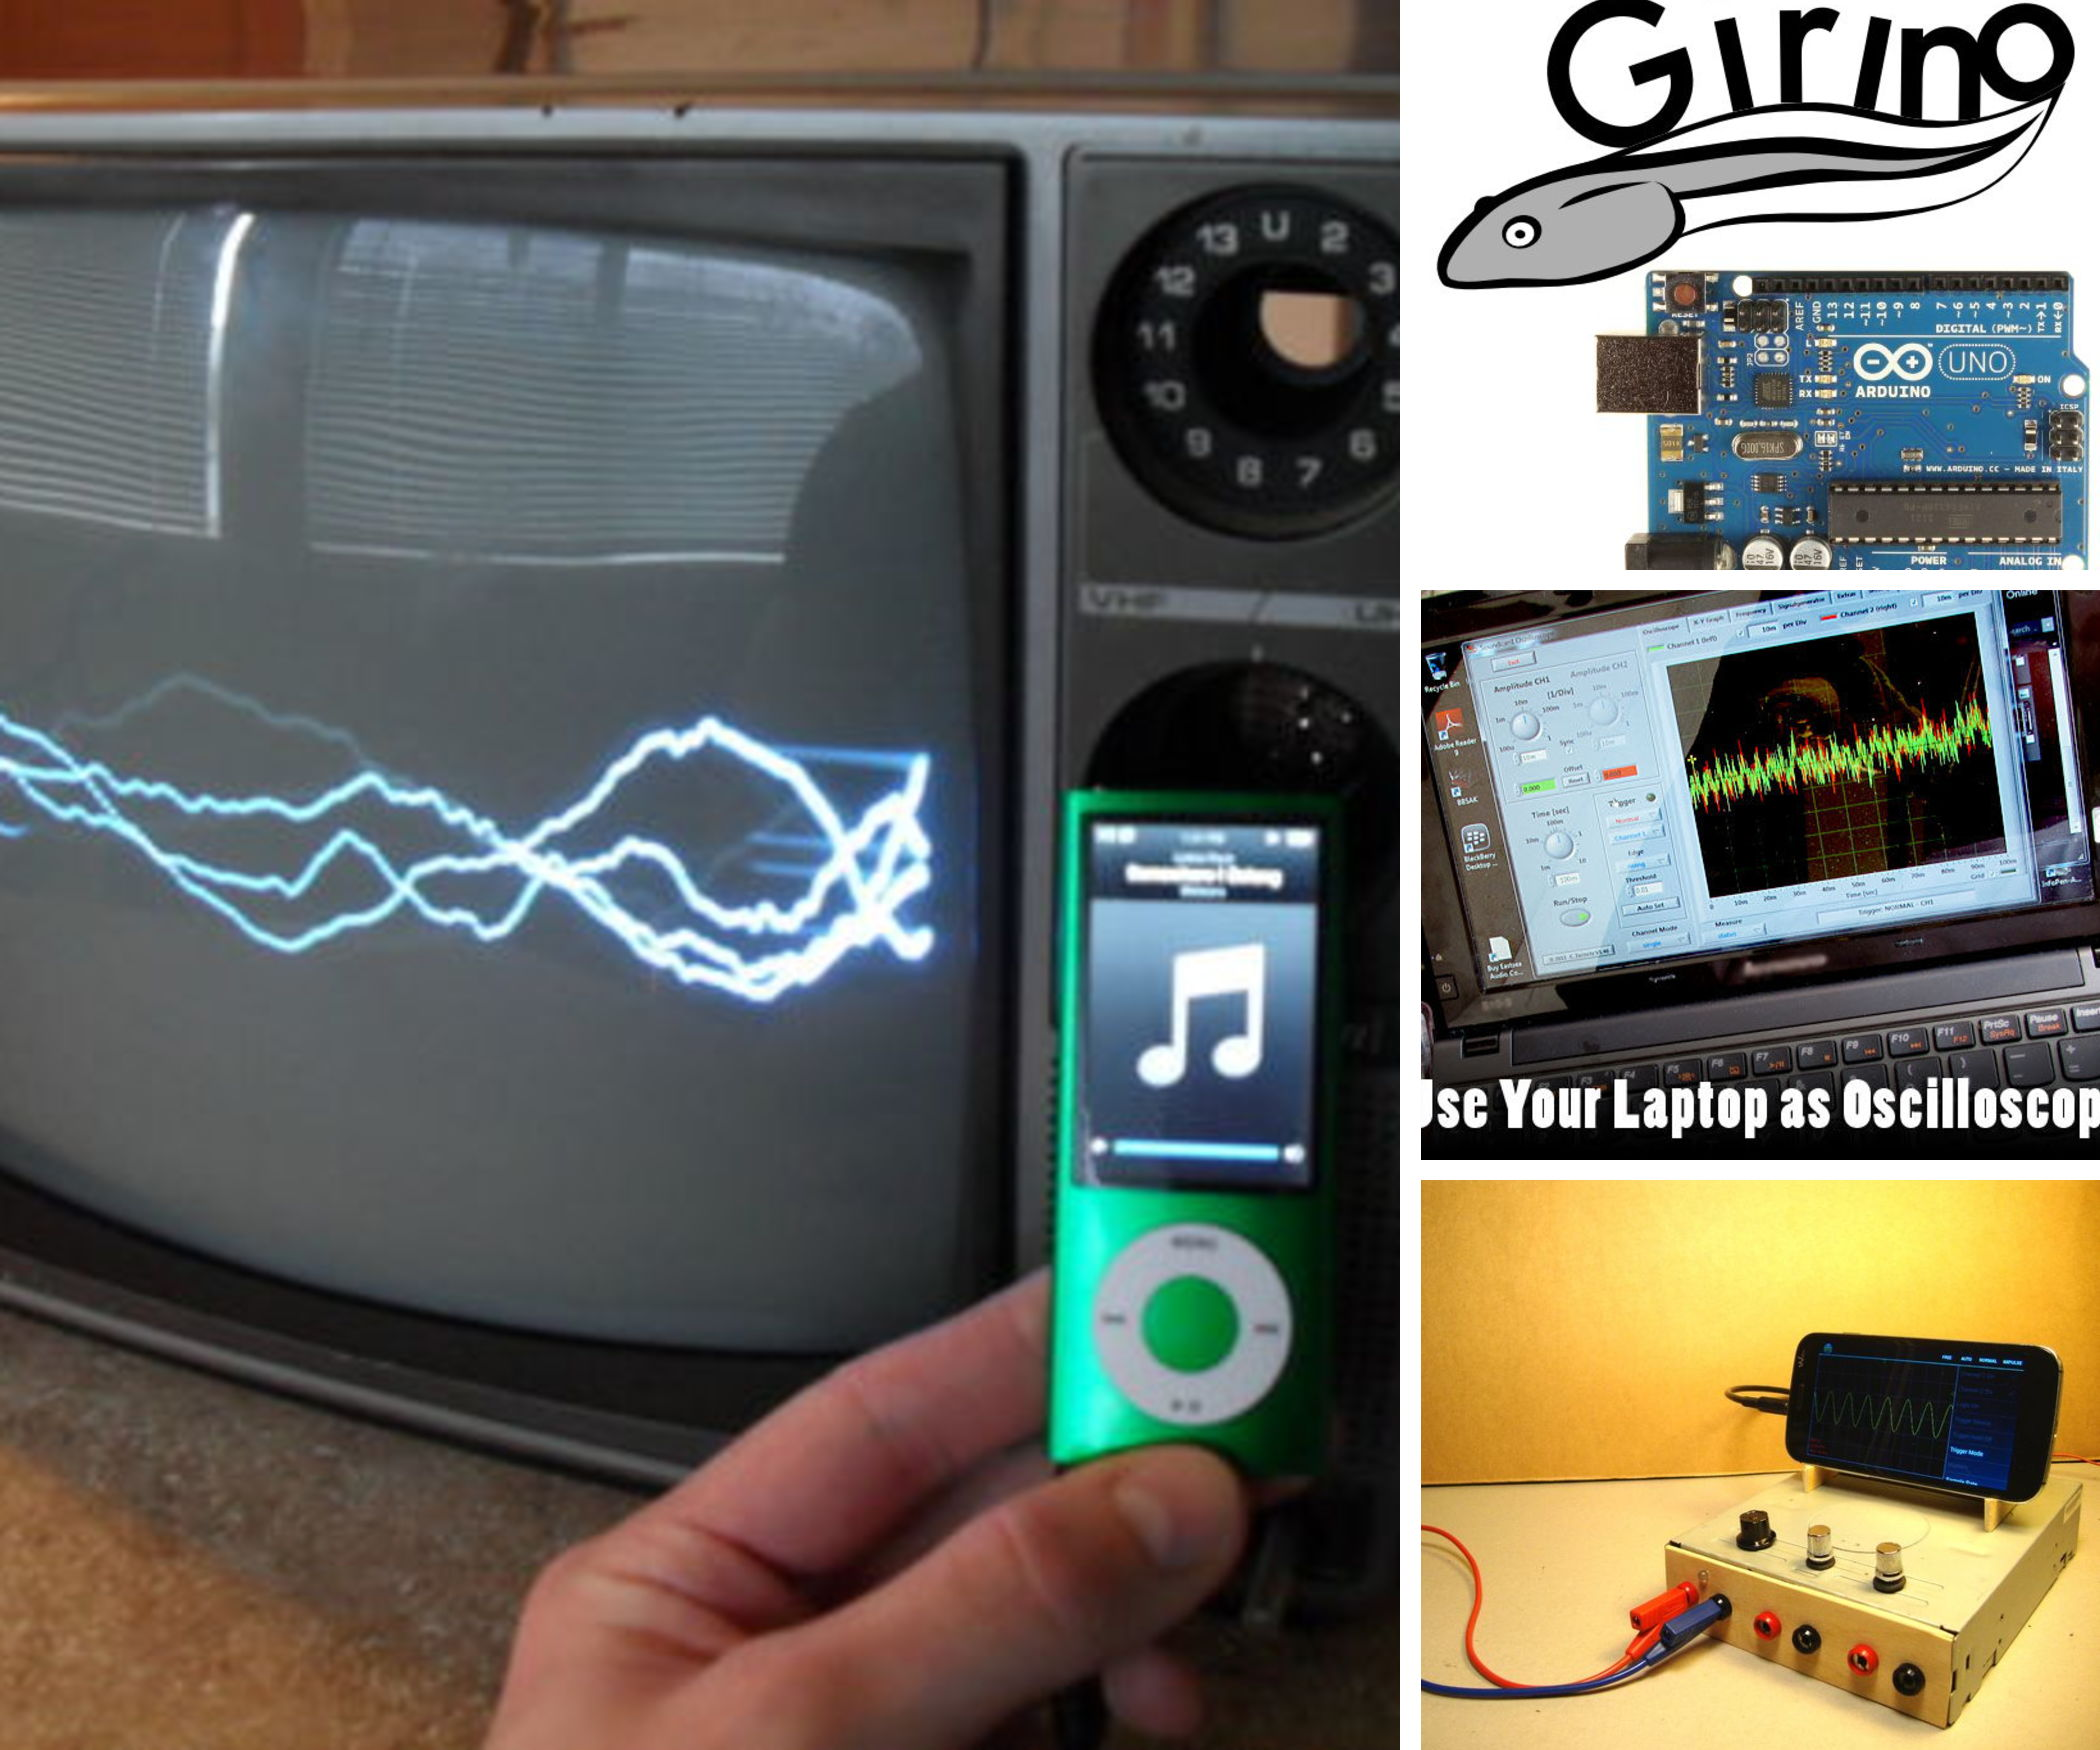 Make Your Own Oscilloscope!